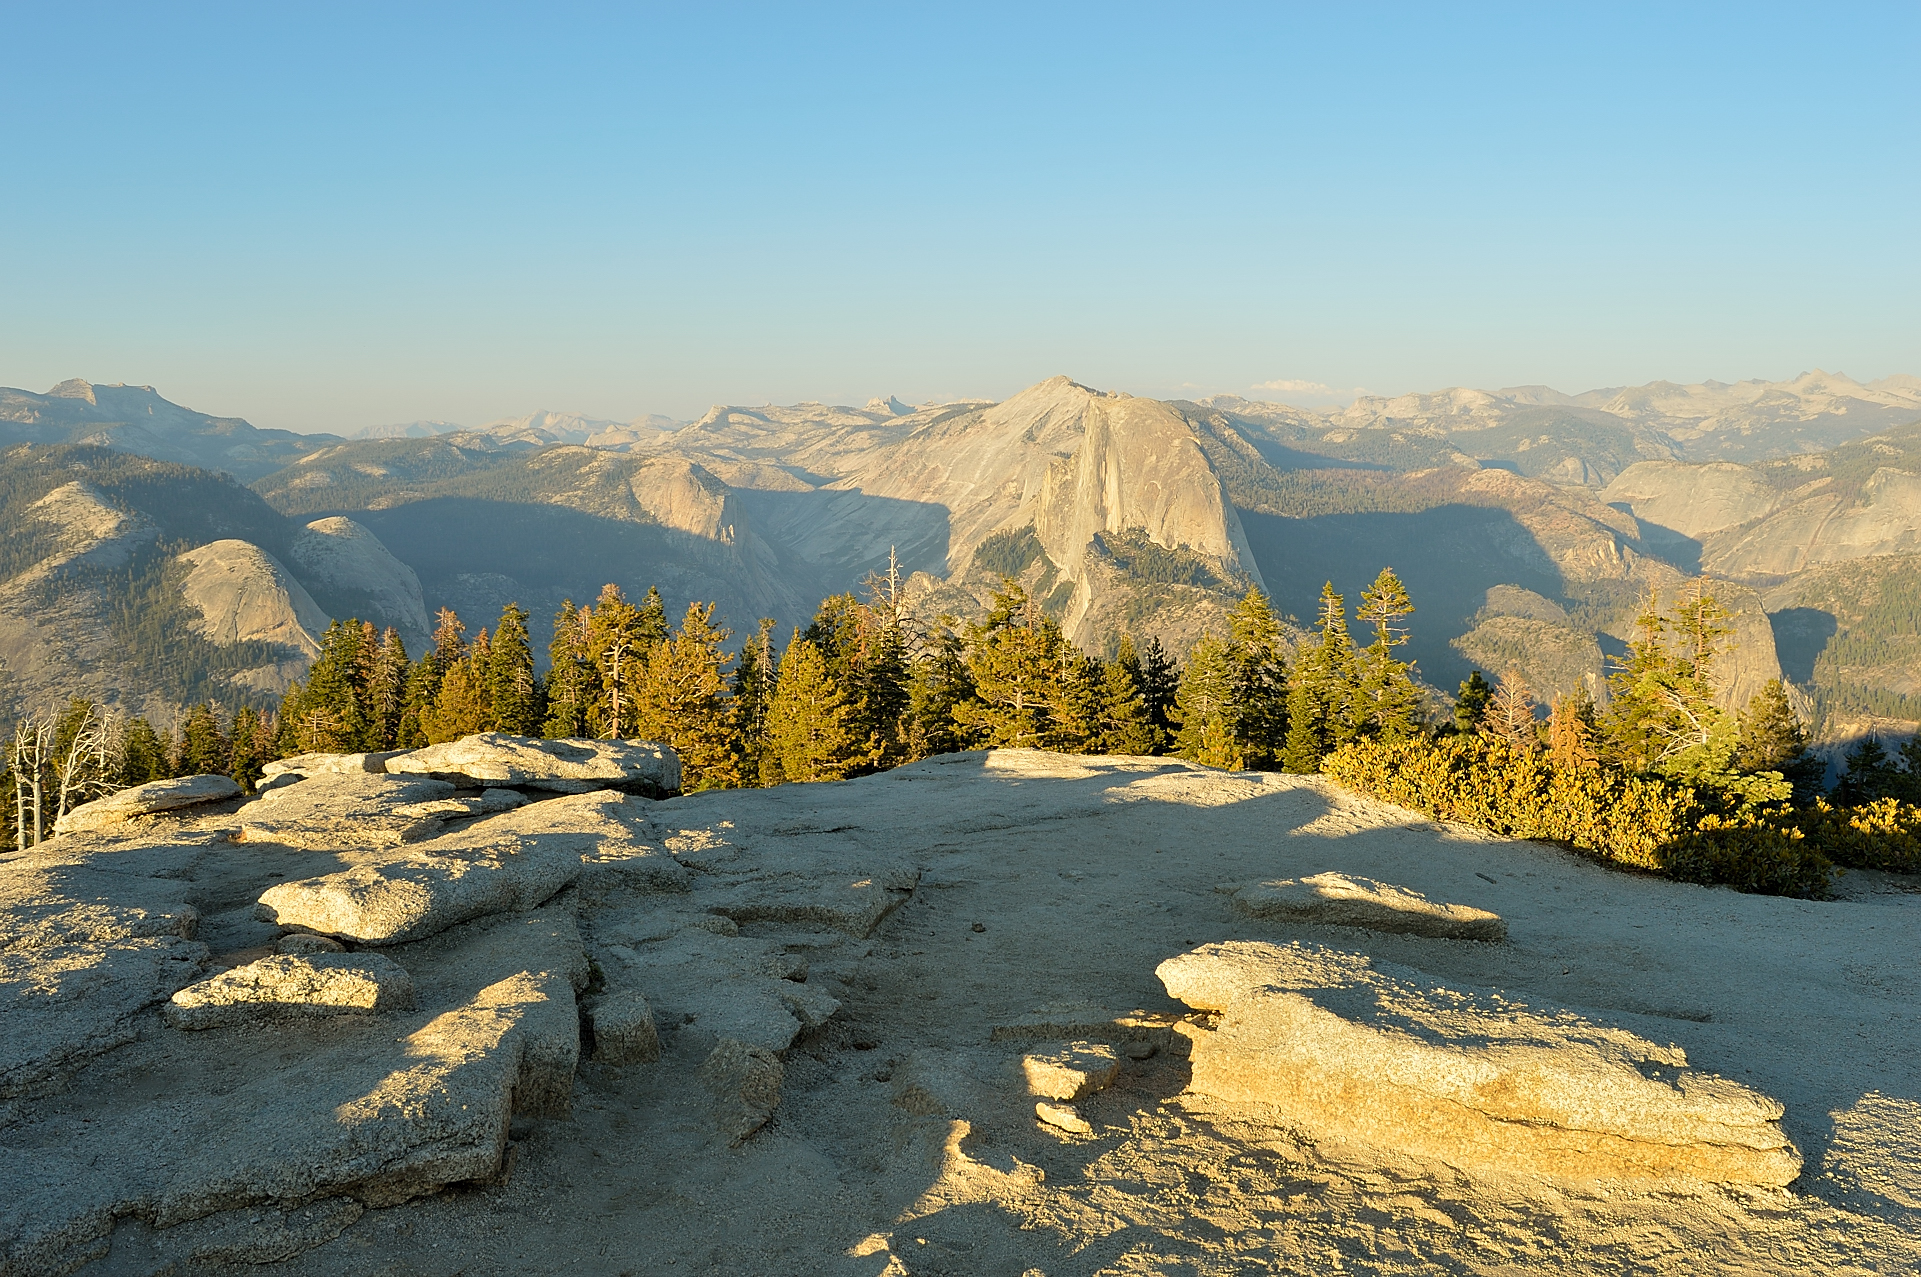 Wiew from Sentinel Dome